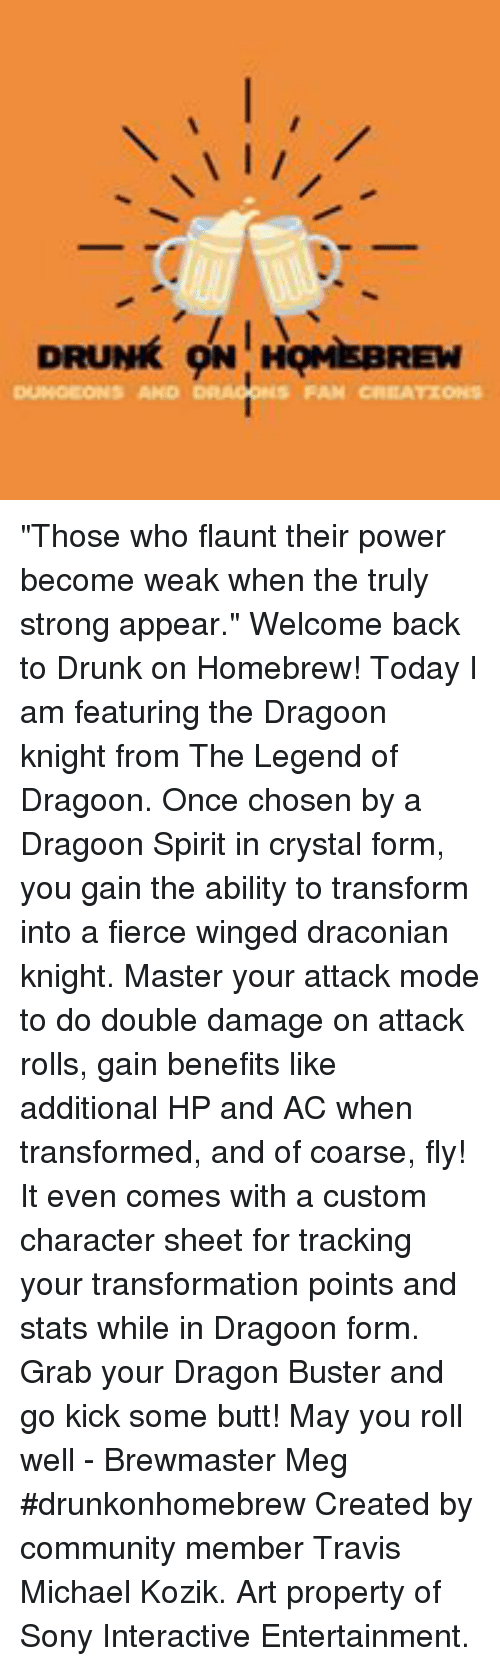 """Butt, Community, and Drunk: DRUNK ON 1HQMİSBREW  AND  CREATIONS """"Those who flaunt their power become weak when the truly strong appear.""""  Welcome back to Drunk on Homebrew!  Today I am featuring the Dragoon knight from The Legend of Dragoon. Once chosen by a Dragoon Spirit in crystal form, you gain the ability to transform into a fierce winged draconian knight. Master your attack mode to do double damage on attack rolls, gain benefits like additional HP and AC when transformed, and of coarse, fly! It even comes with a custom character sheet for tracking your transformation points and stats while in Dragoon form.  Grab your Dragon Buster and go kick some butt!  May you roll well - Brewmaster Meg  #drunkonhomebrew  Created by community member Travis Michael Kozik.  Art property of Sony Interactive Entertainment."""